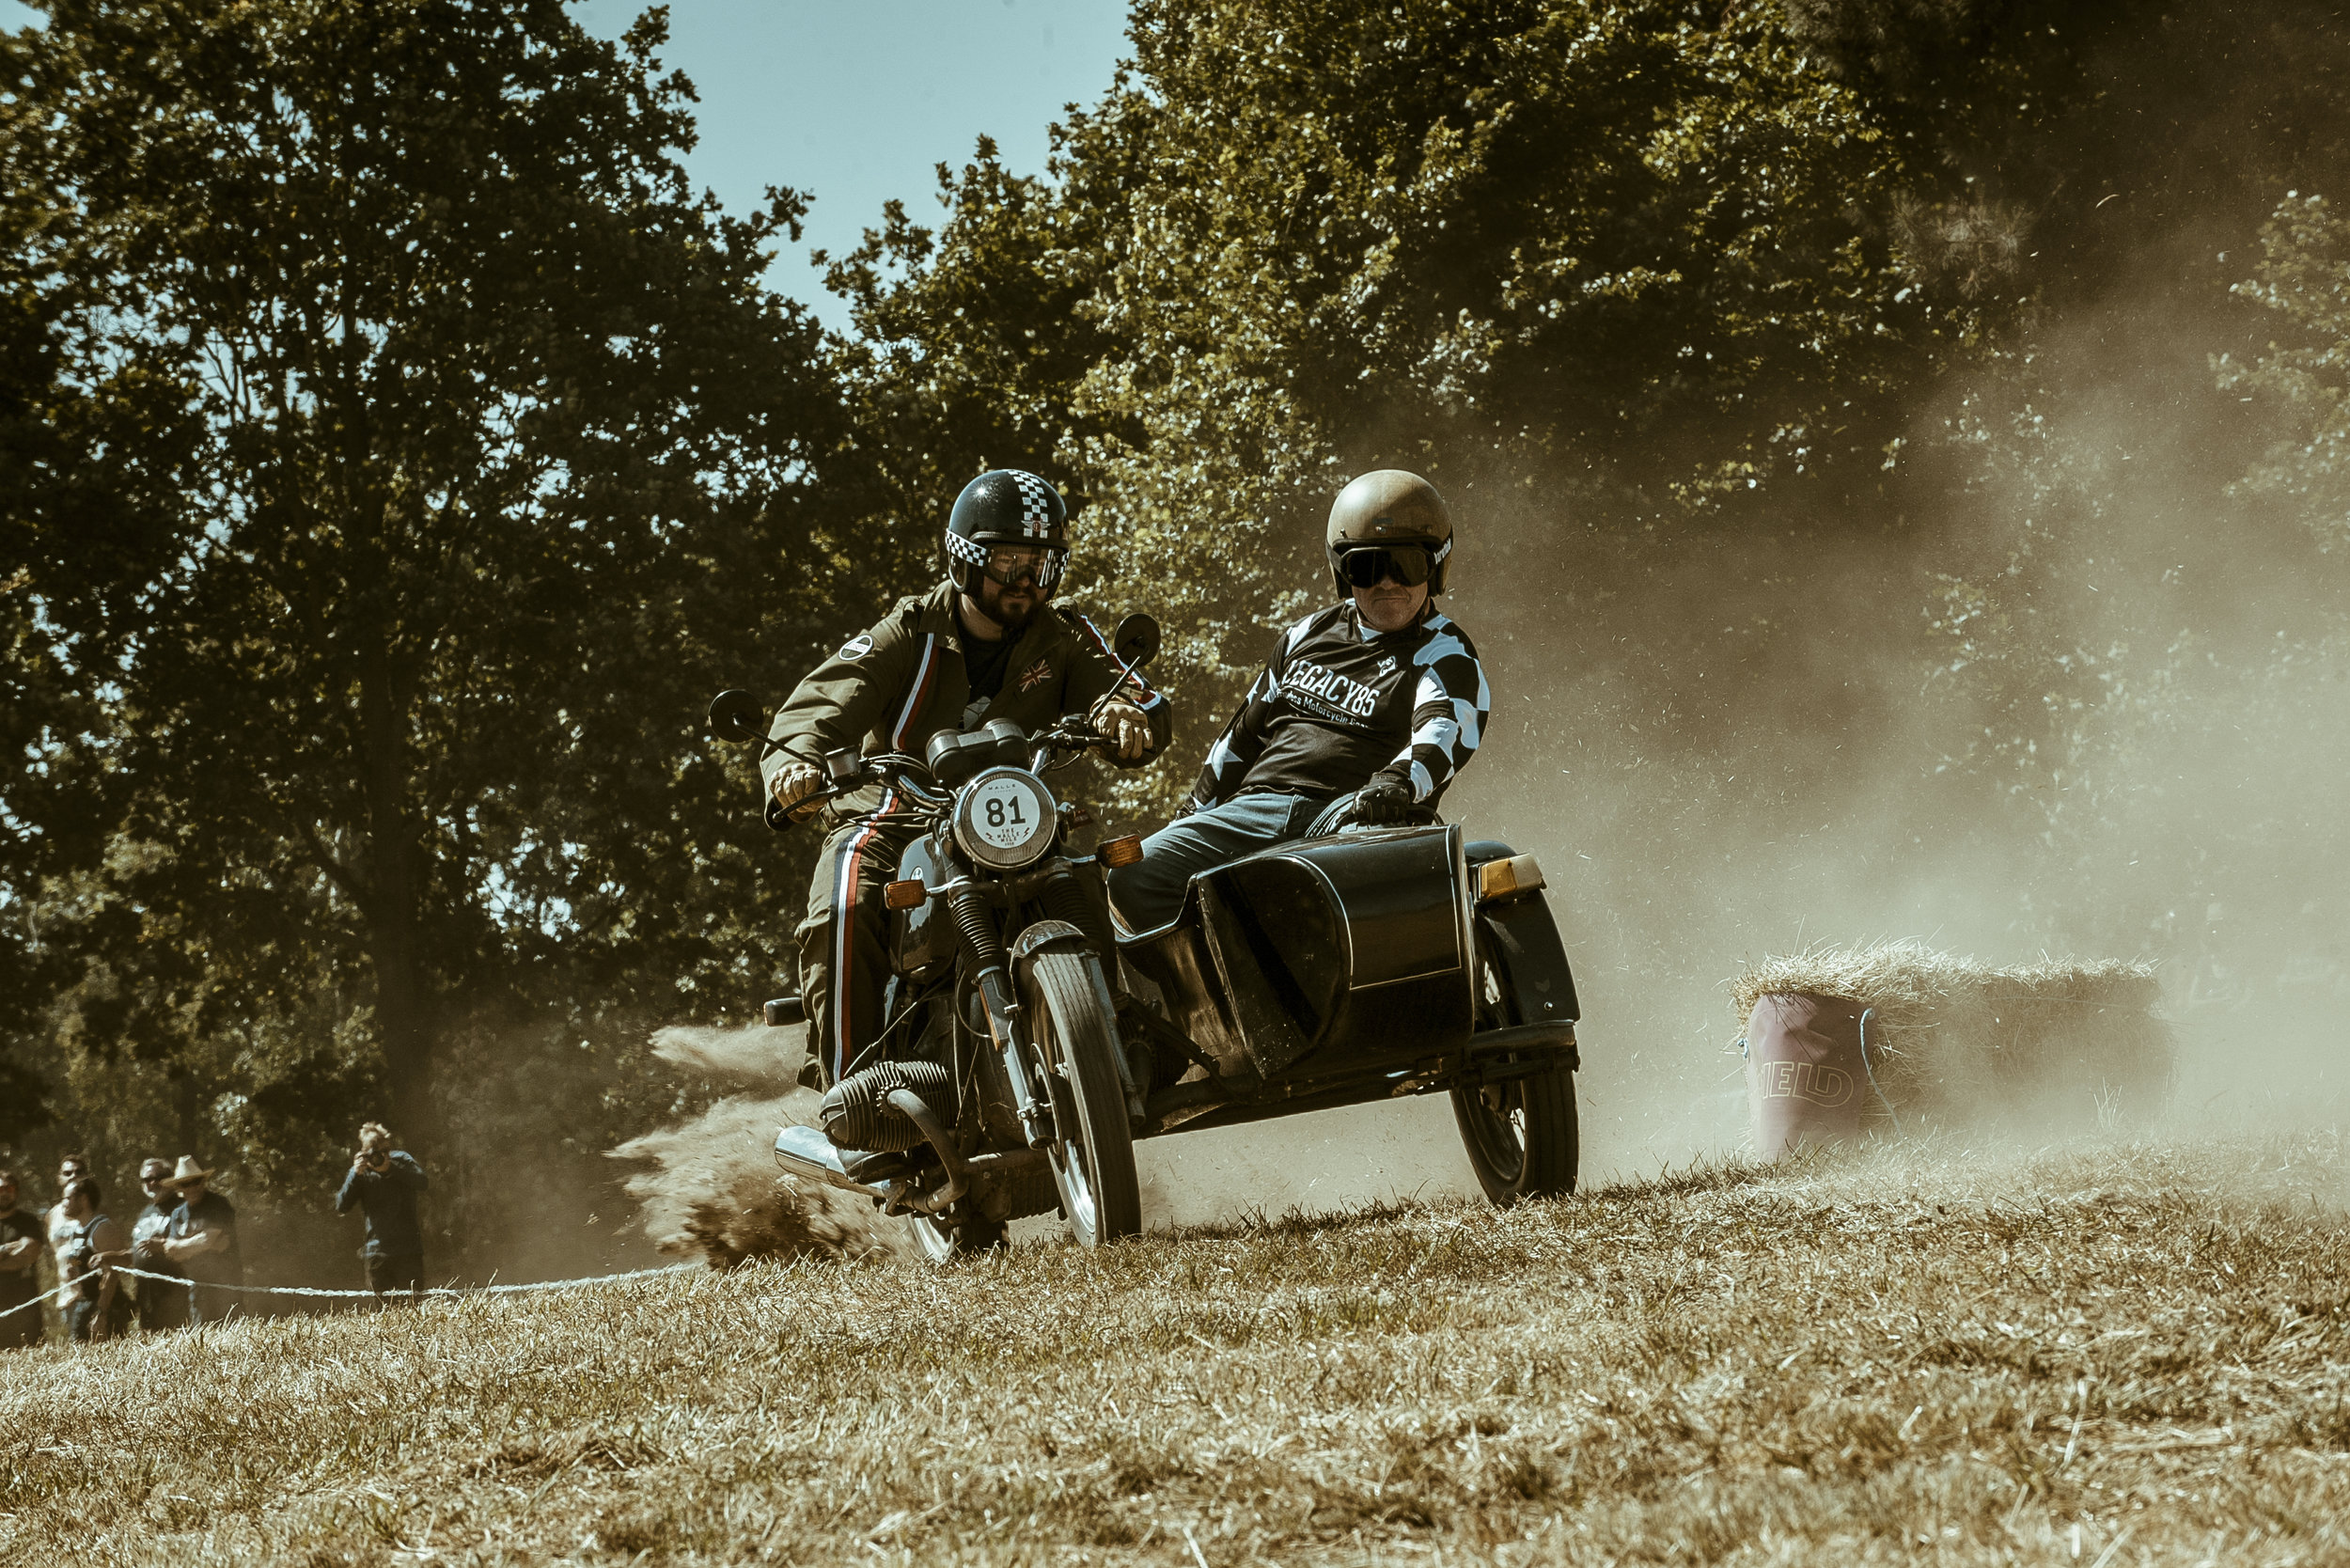 Classic bike and sidecar - Malle Mile.